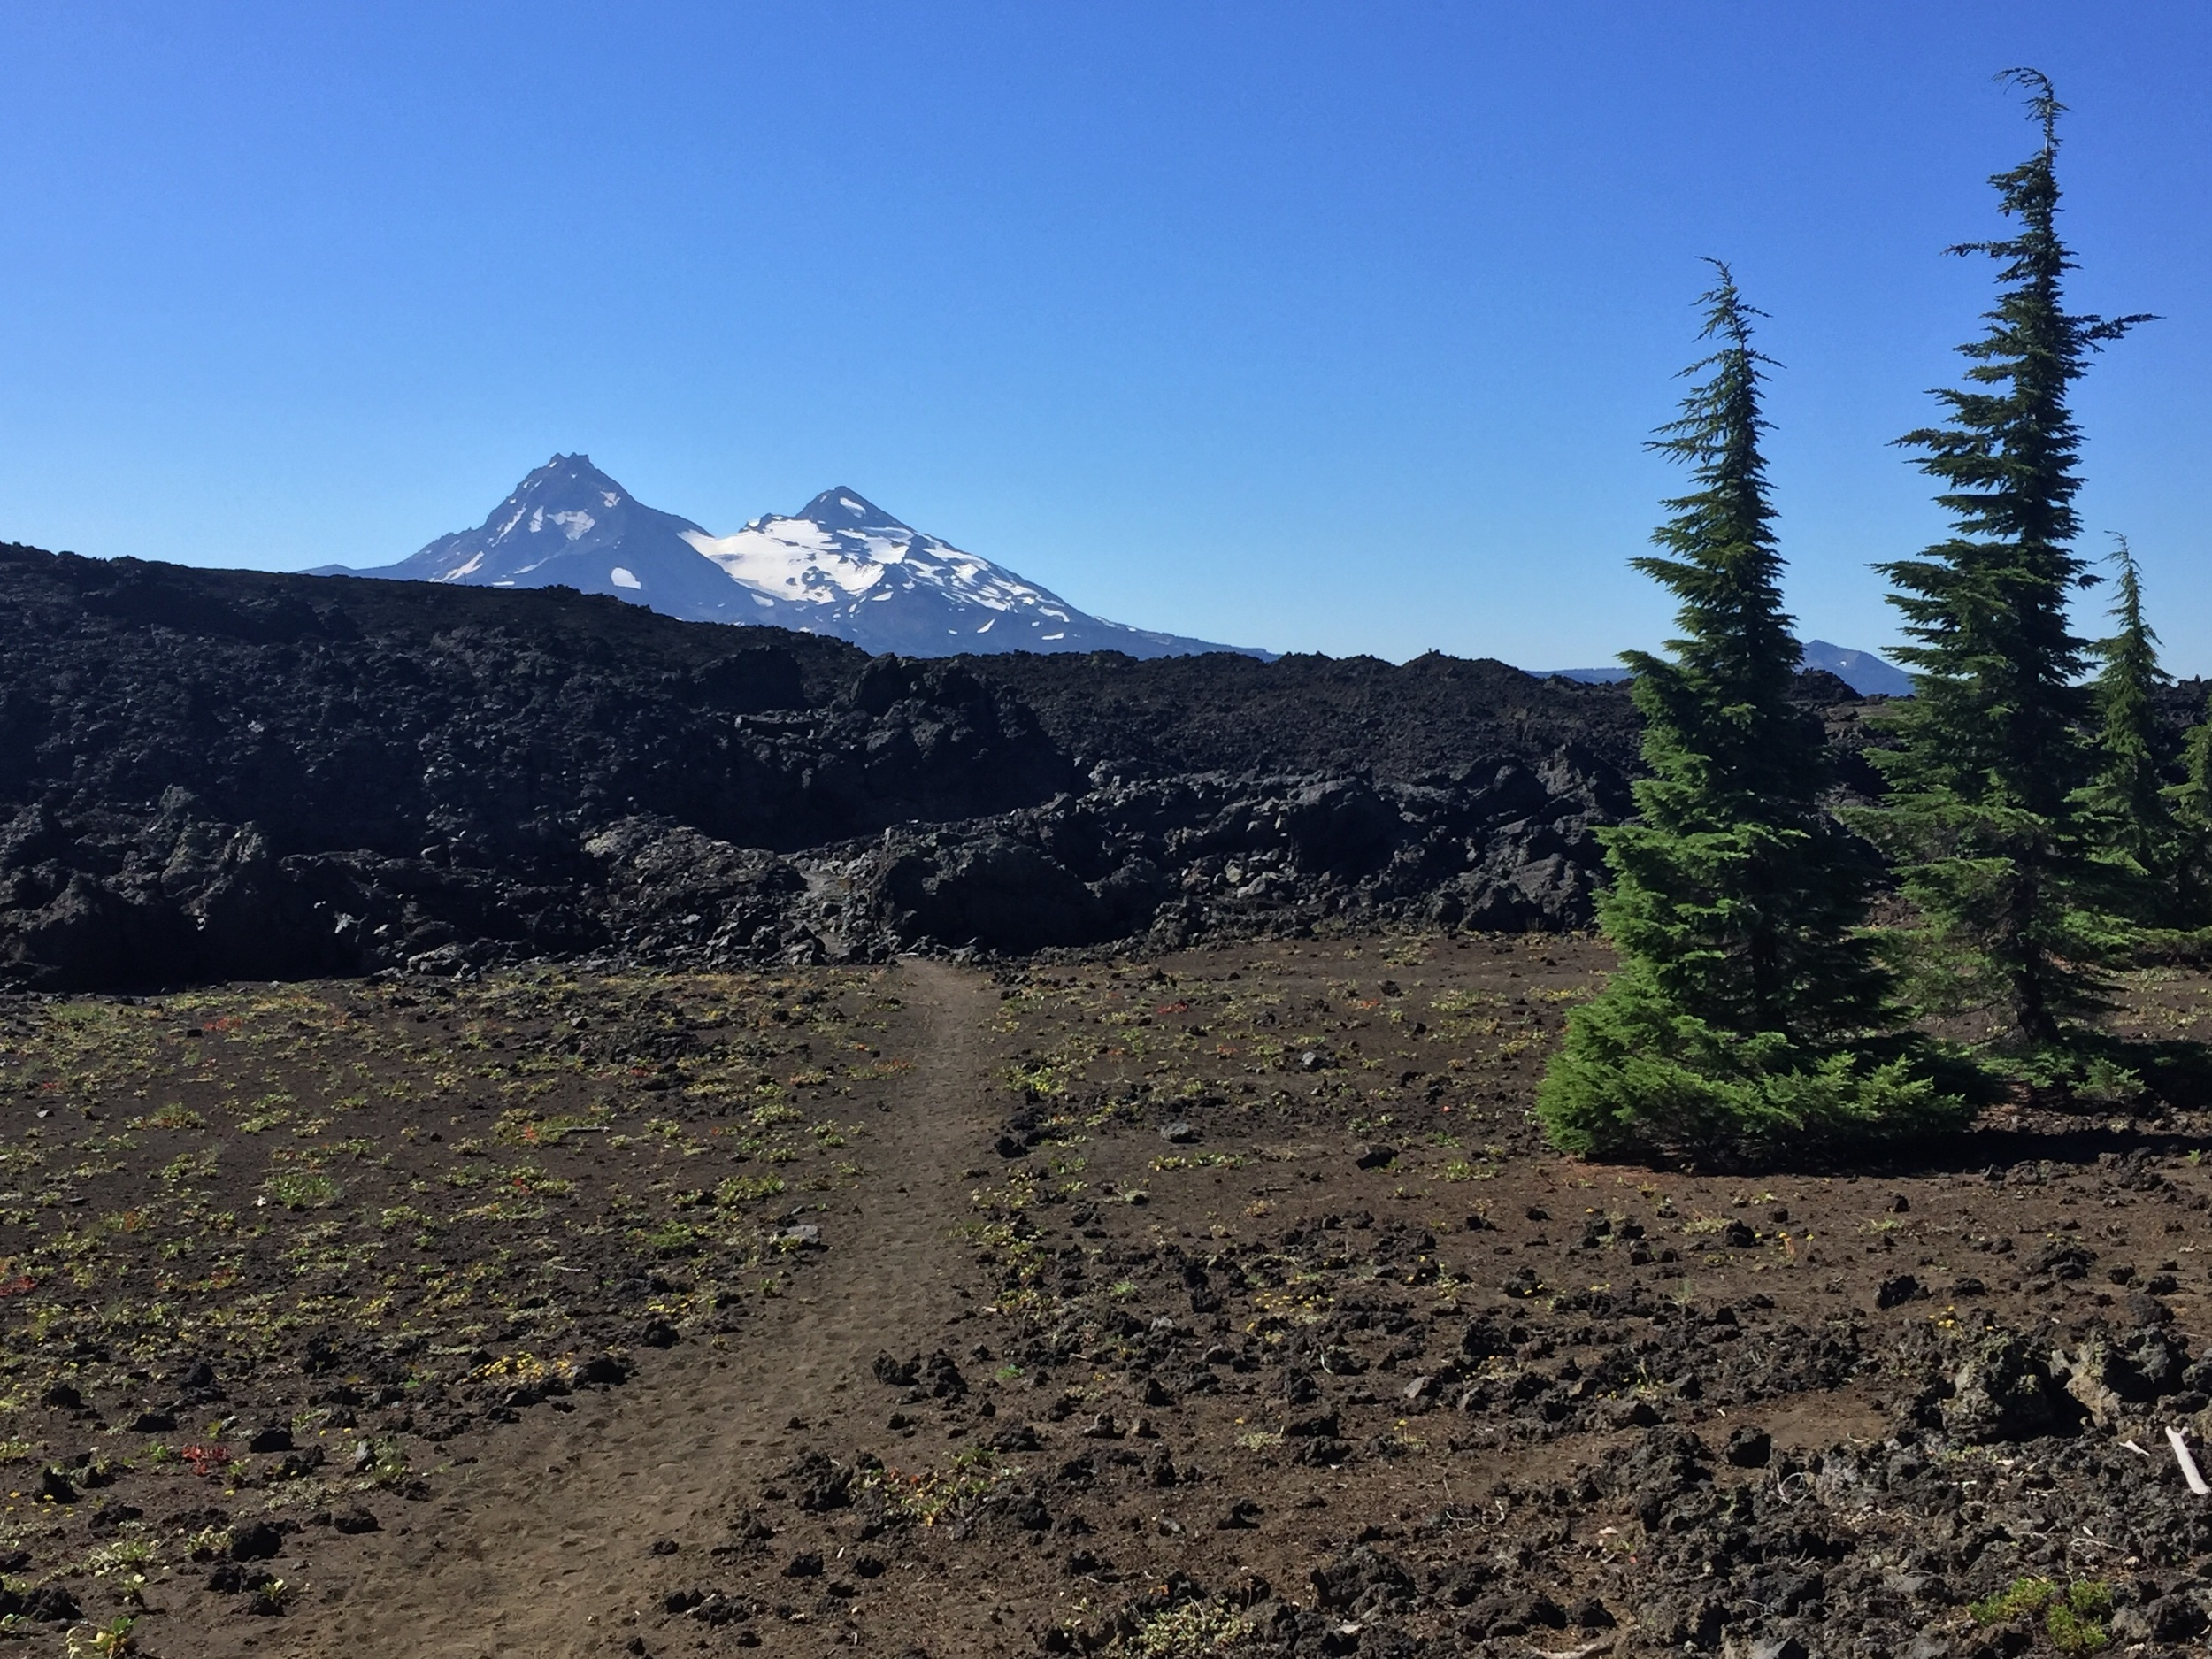 Middle & North Sister across the edge of the lava fields